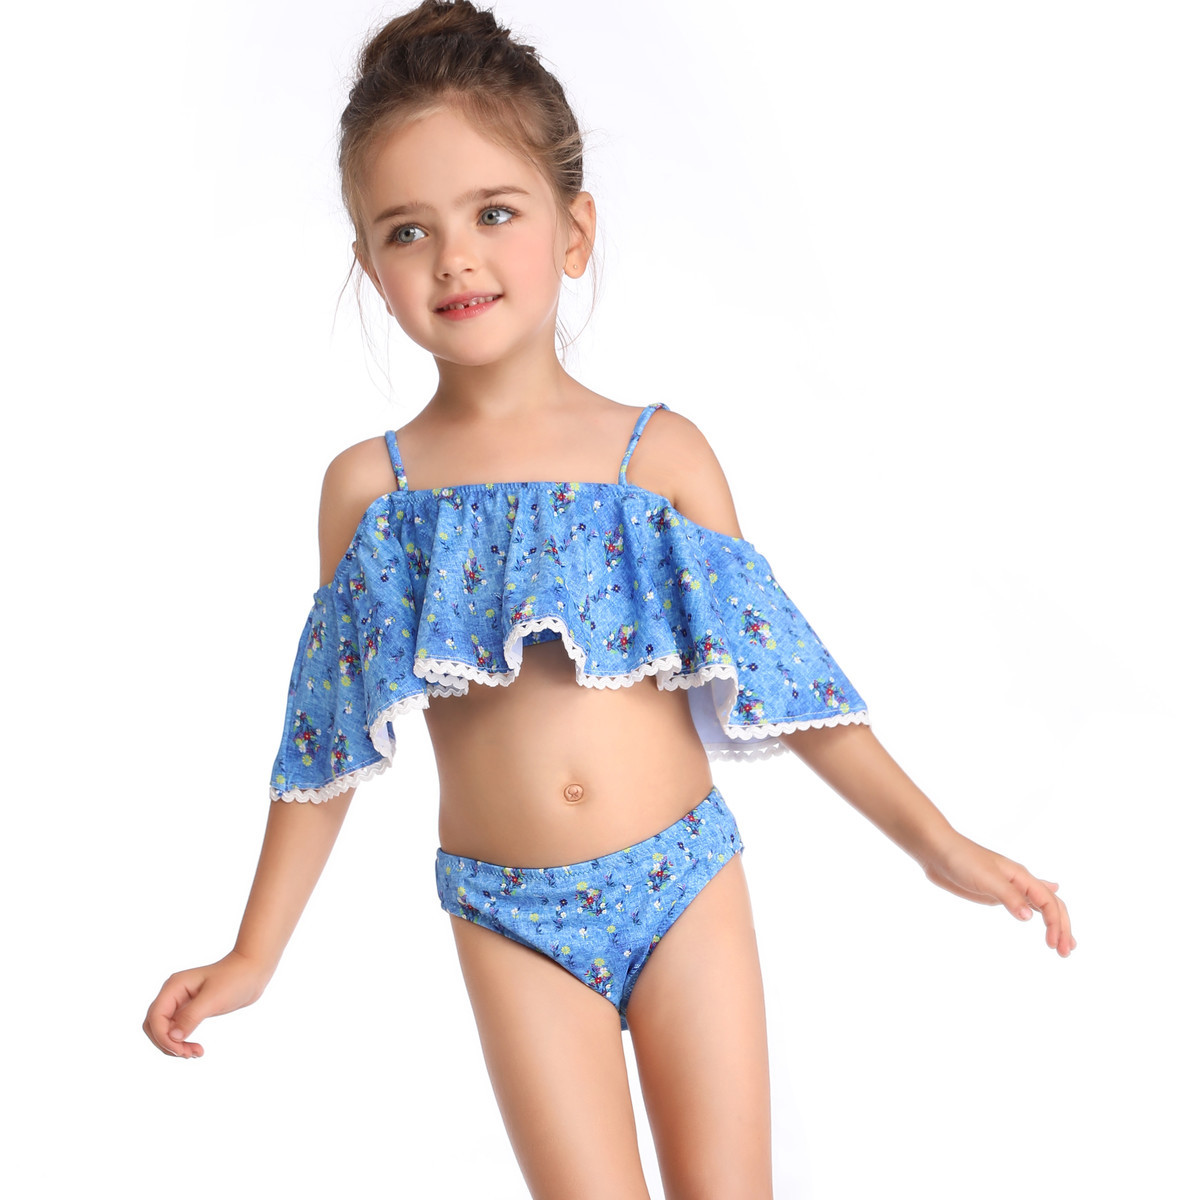 2019 Europe And America GIRL'S Swimsuit Off-Shoulder Children Split Type Flounced Camisole KID'S Swimwear Hot Selling